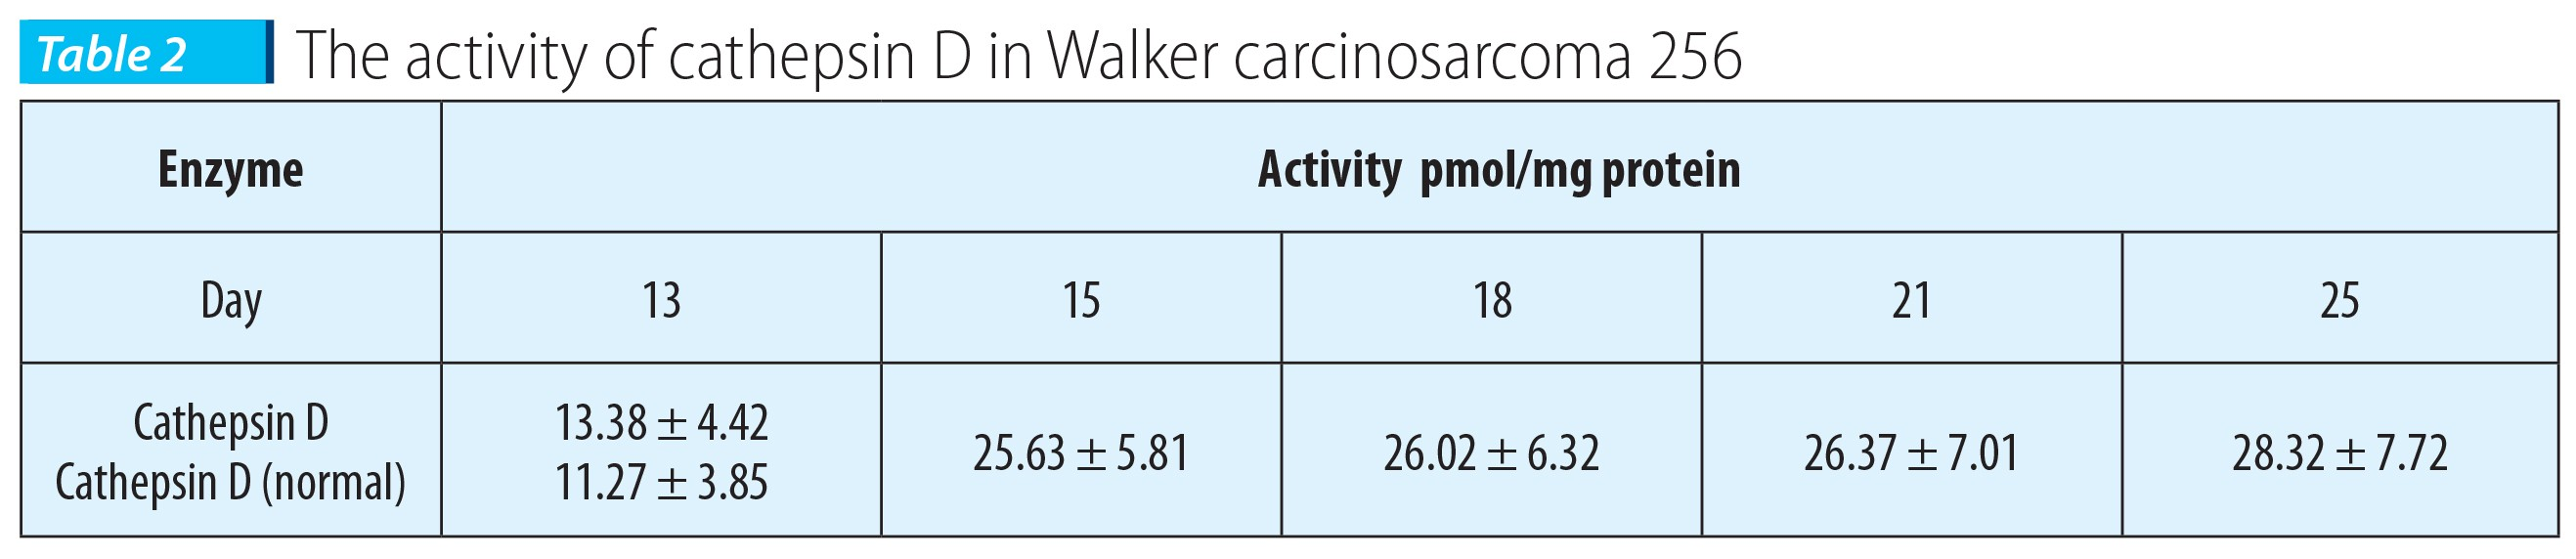 Tabelul 2; The activity of cathepsin D in Walker carcinosarcoma 256